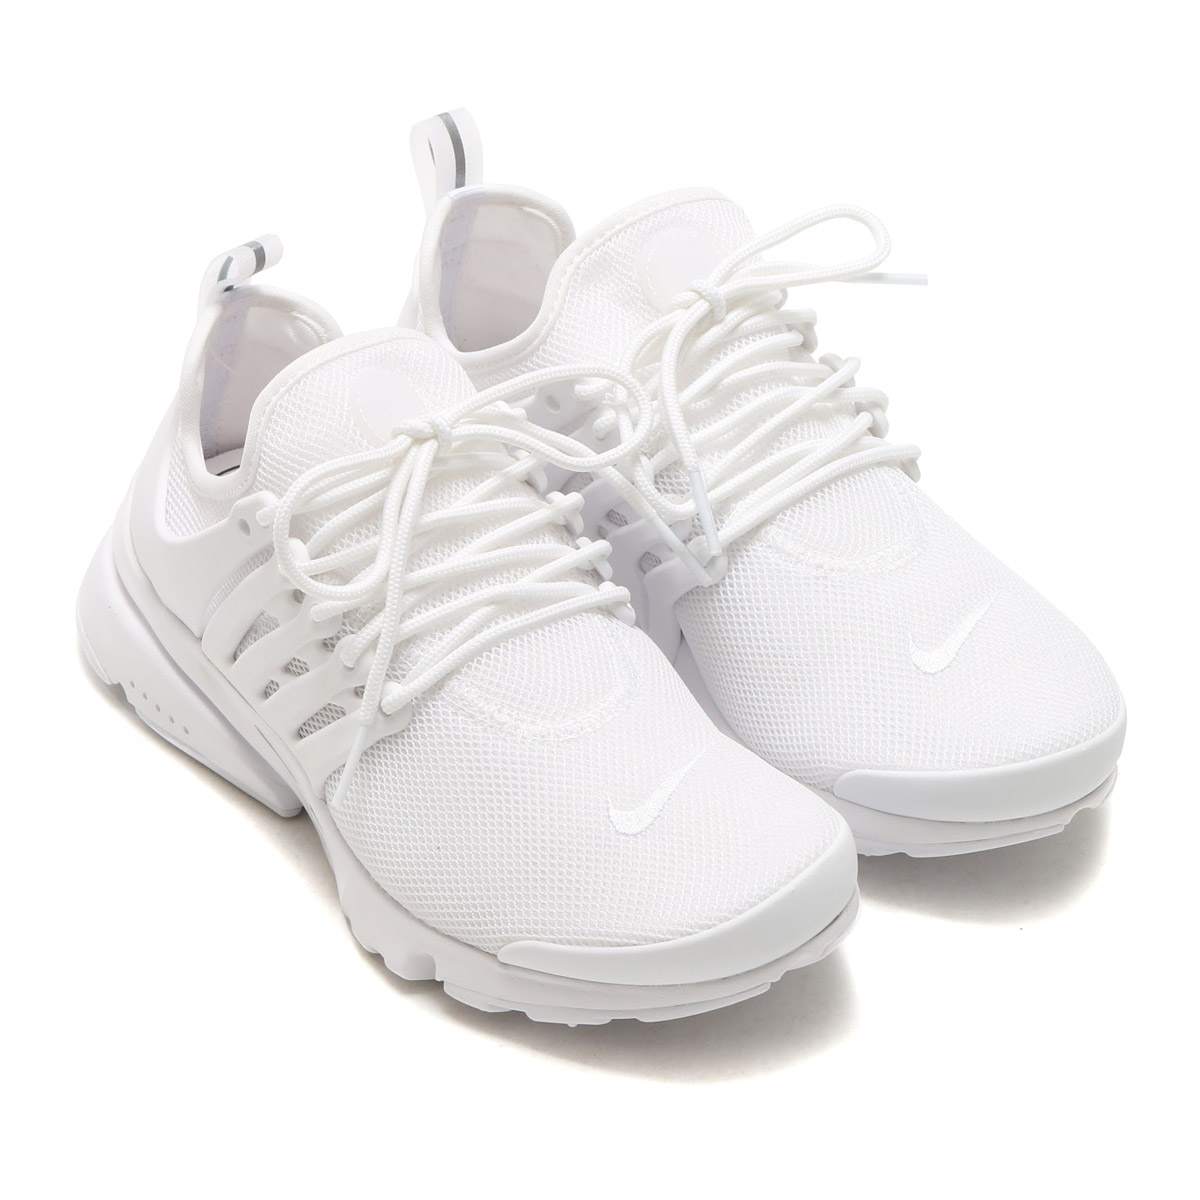 100% authentic 71260 c1b13 IP mid sole. The IP out sole which I arranged a rubber traction pod for.  リエンジニアードバージョン of the running shoes which I arranged for casual wear.